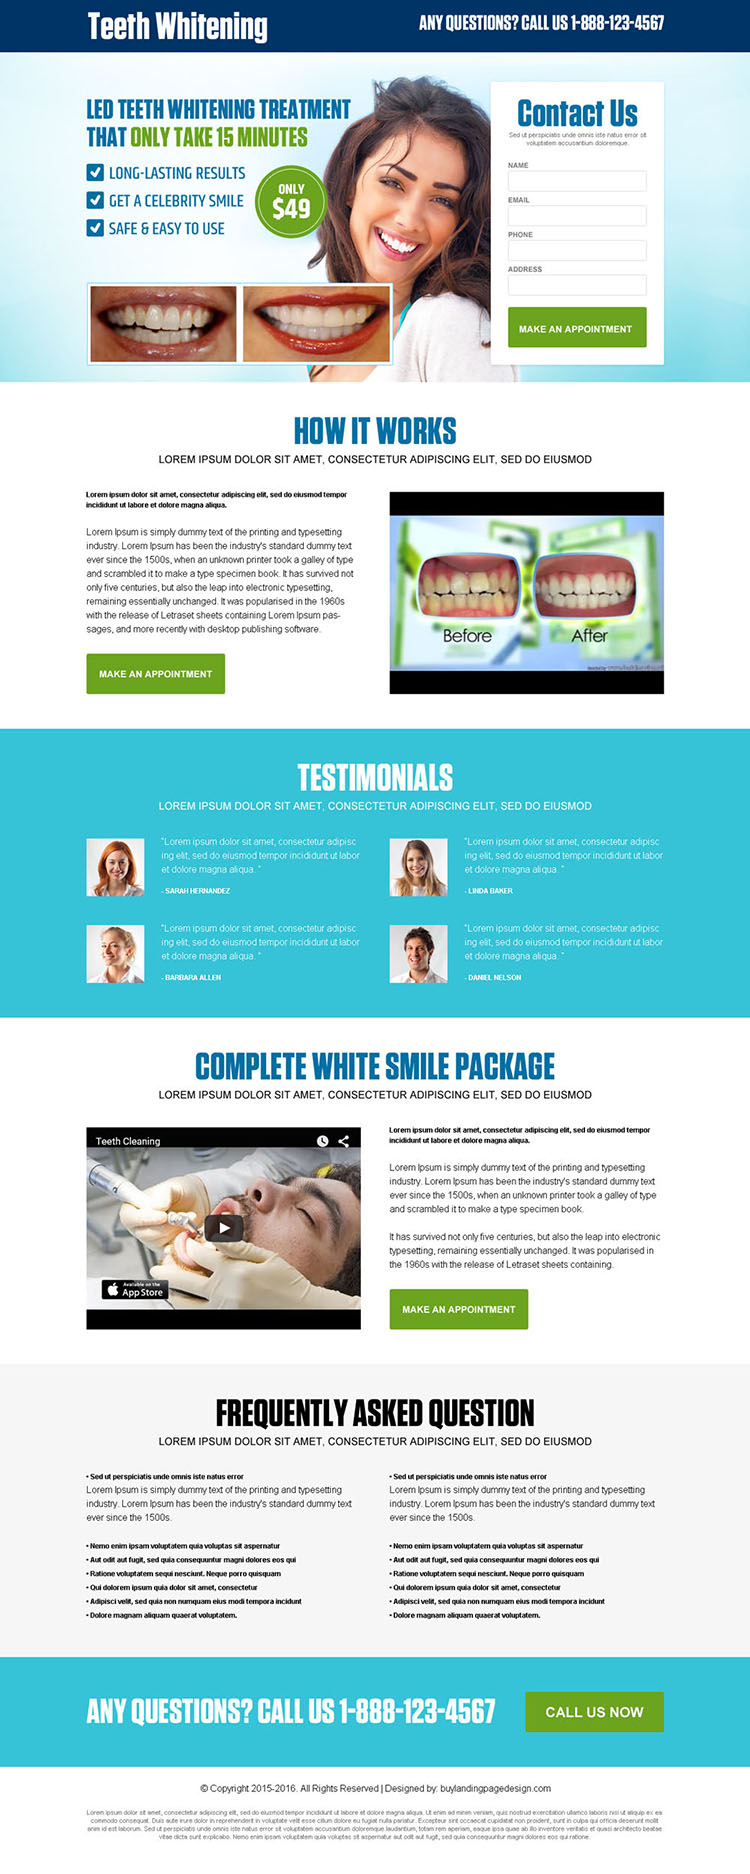 best teeth whitening treatment lead generating landing page design